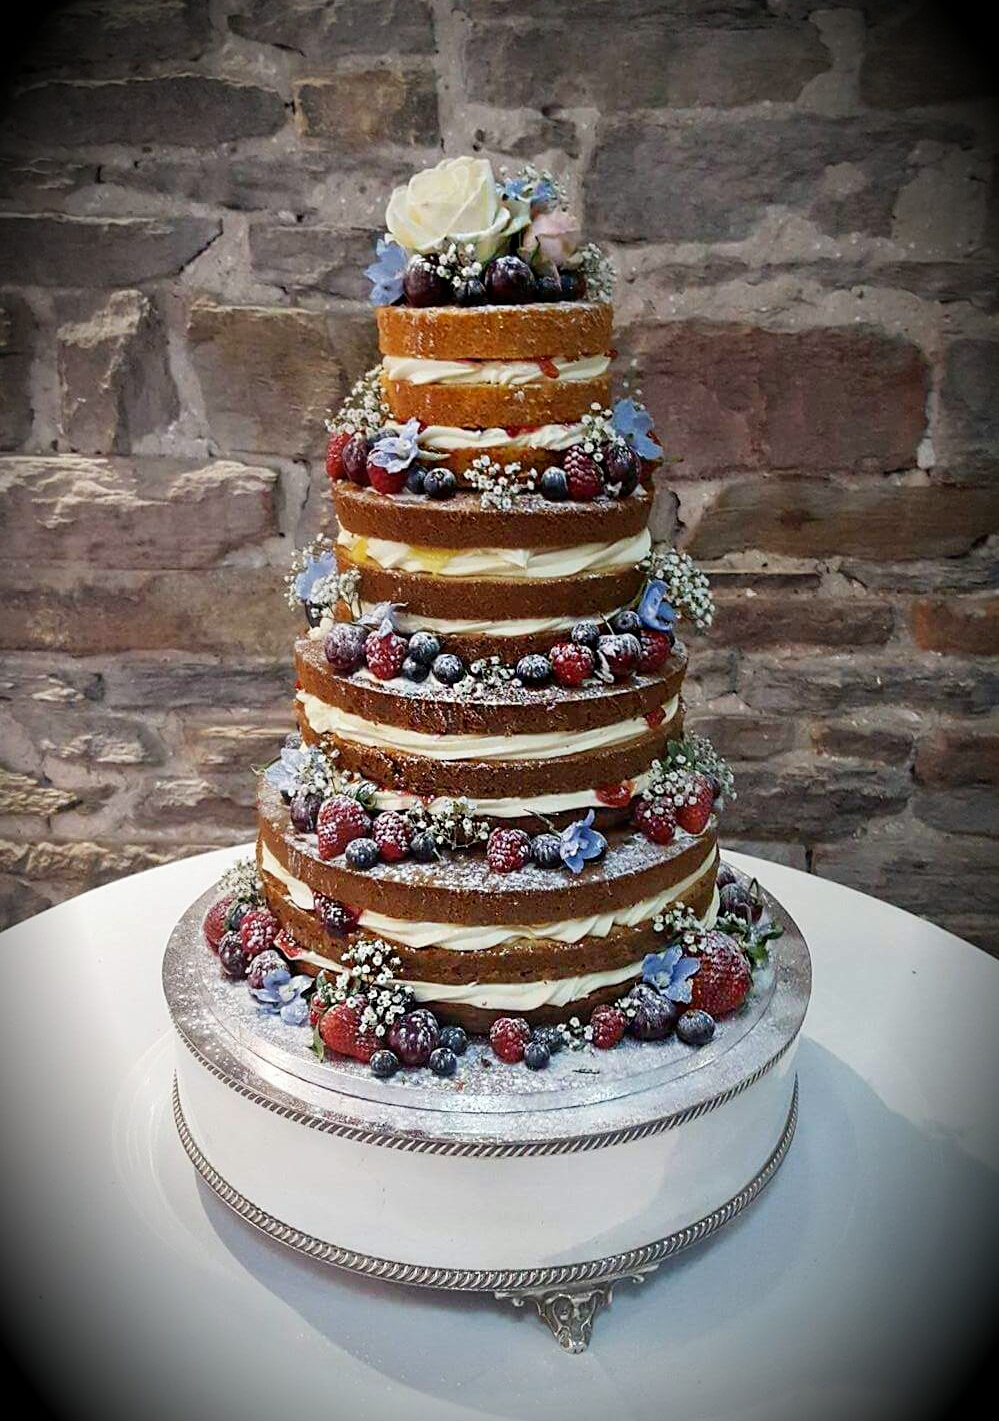 What to ask your baker when ordering a cake with special dietary requirements